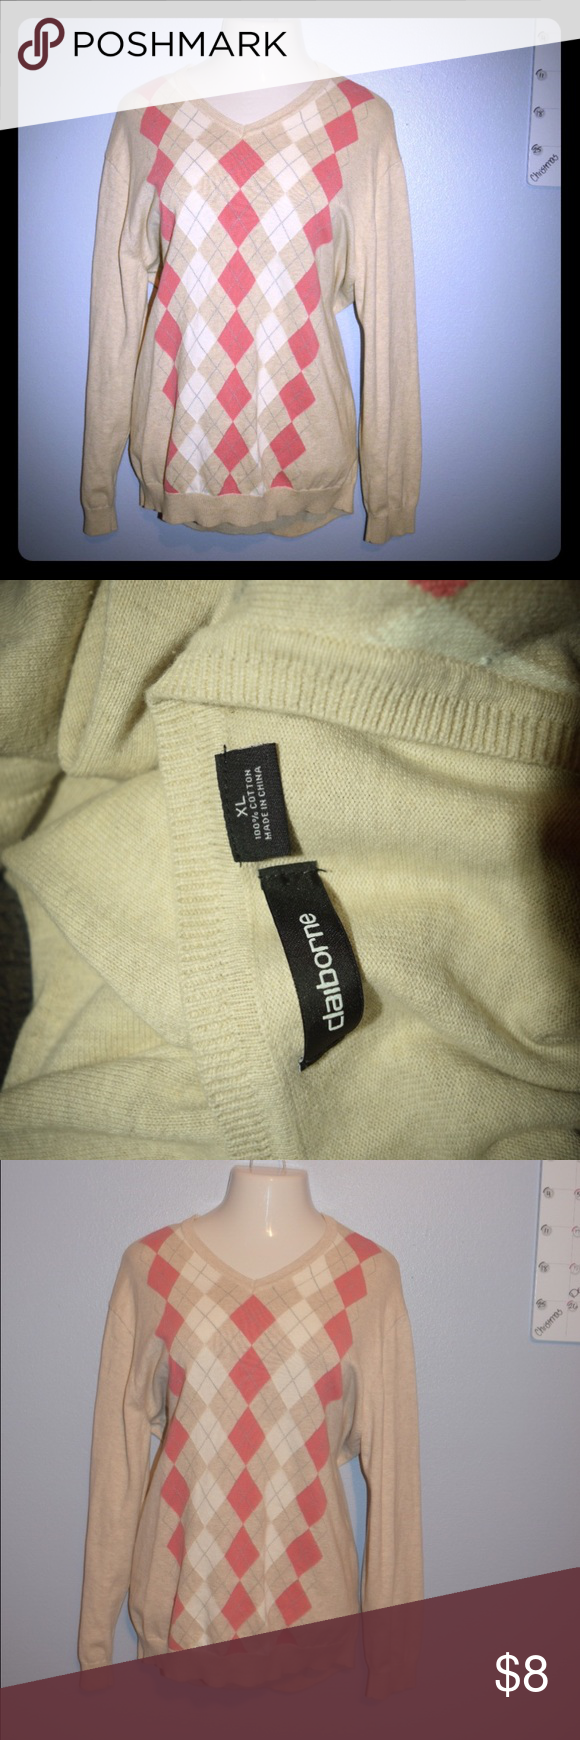 Claiborne XL Gently used, no flaws Sweaters